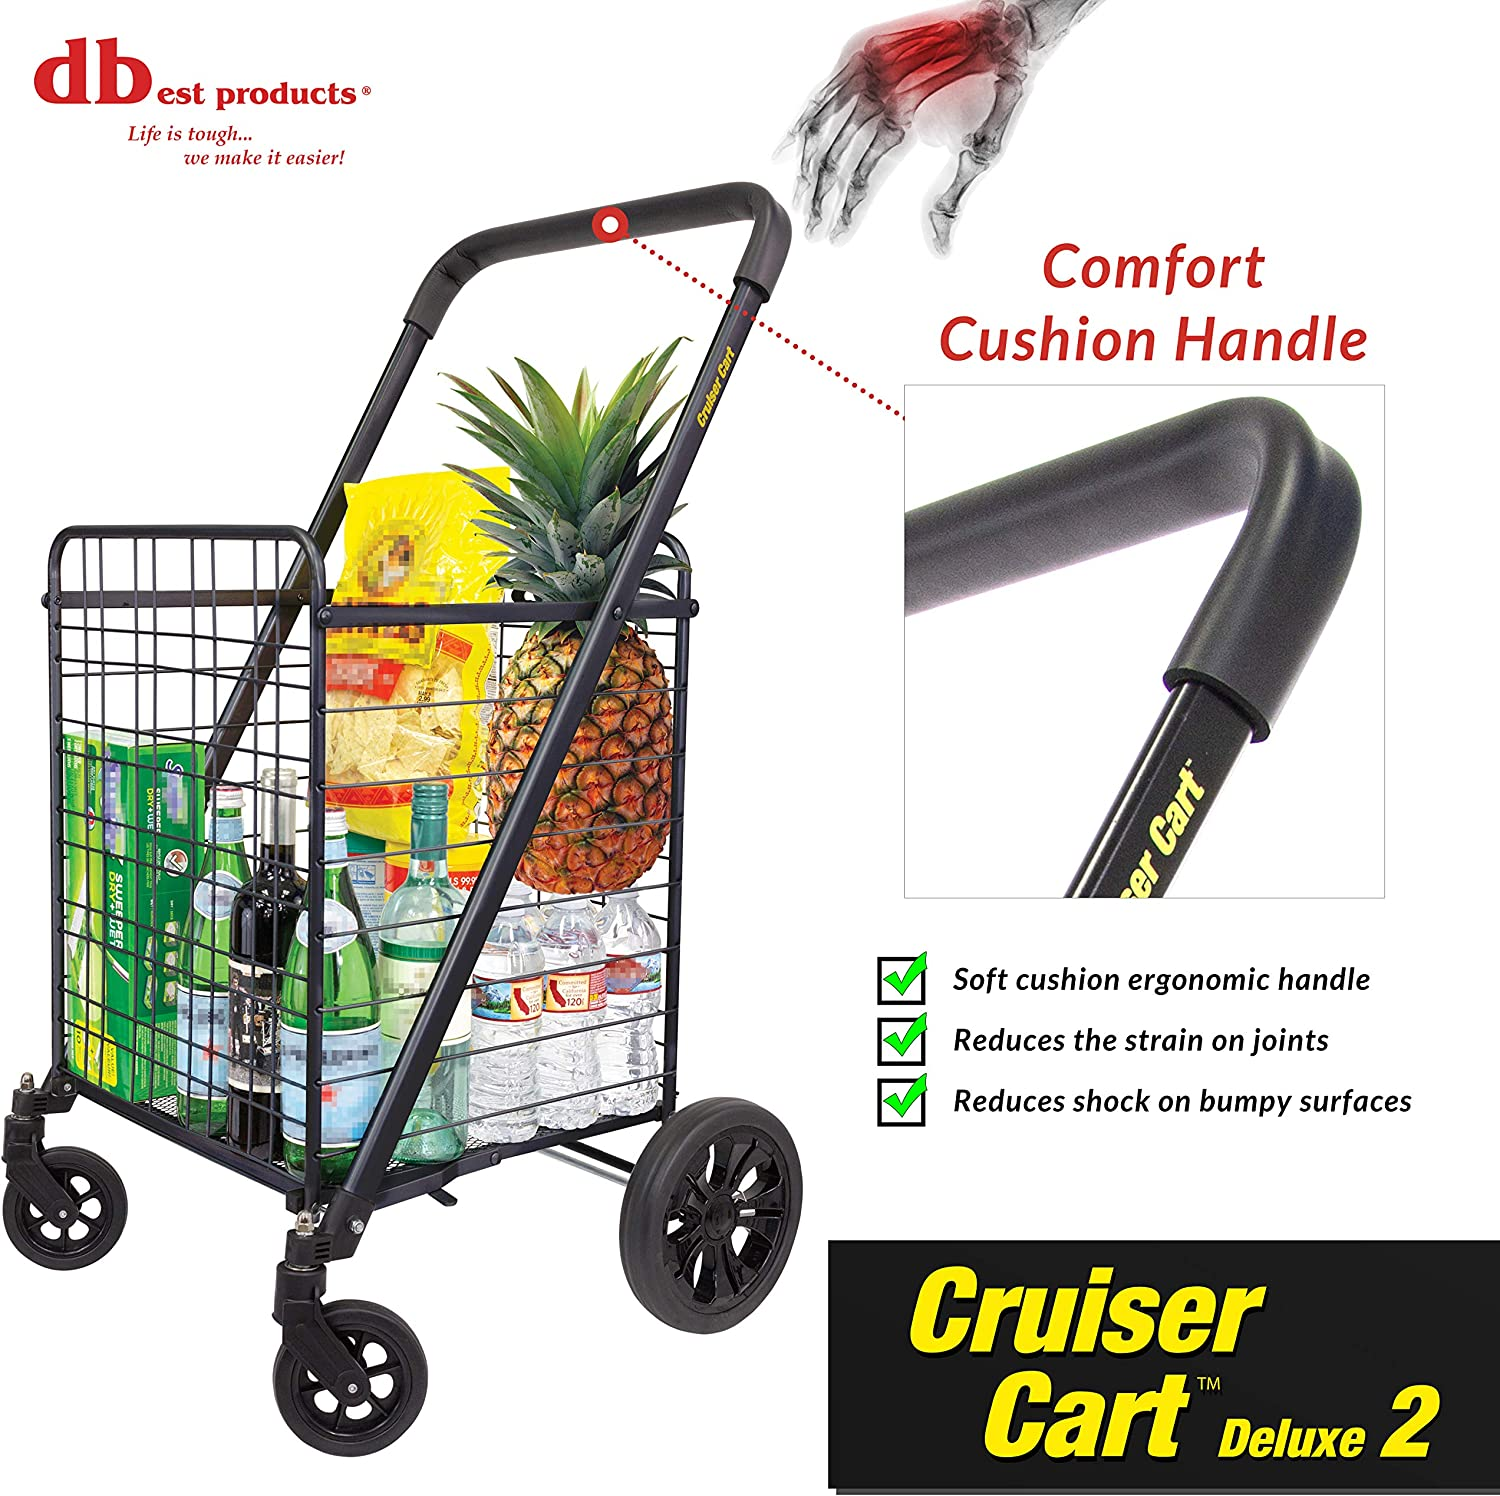 DBEST Products Cruiser Cart 360 Foldable Shopping Utility Basket on Wheels Red for sale online